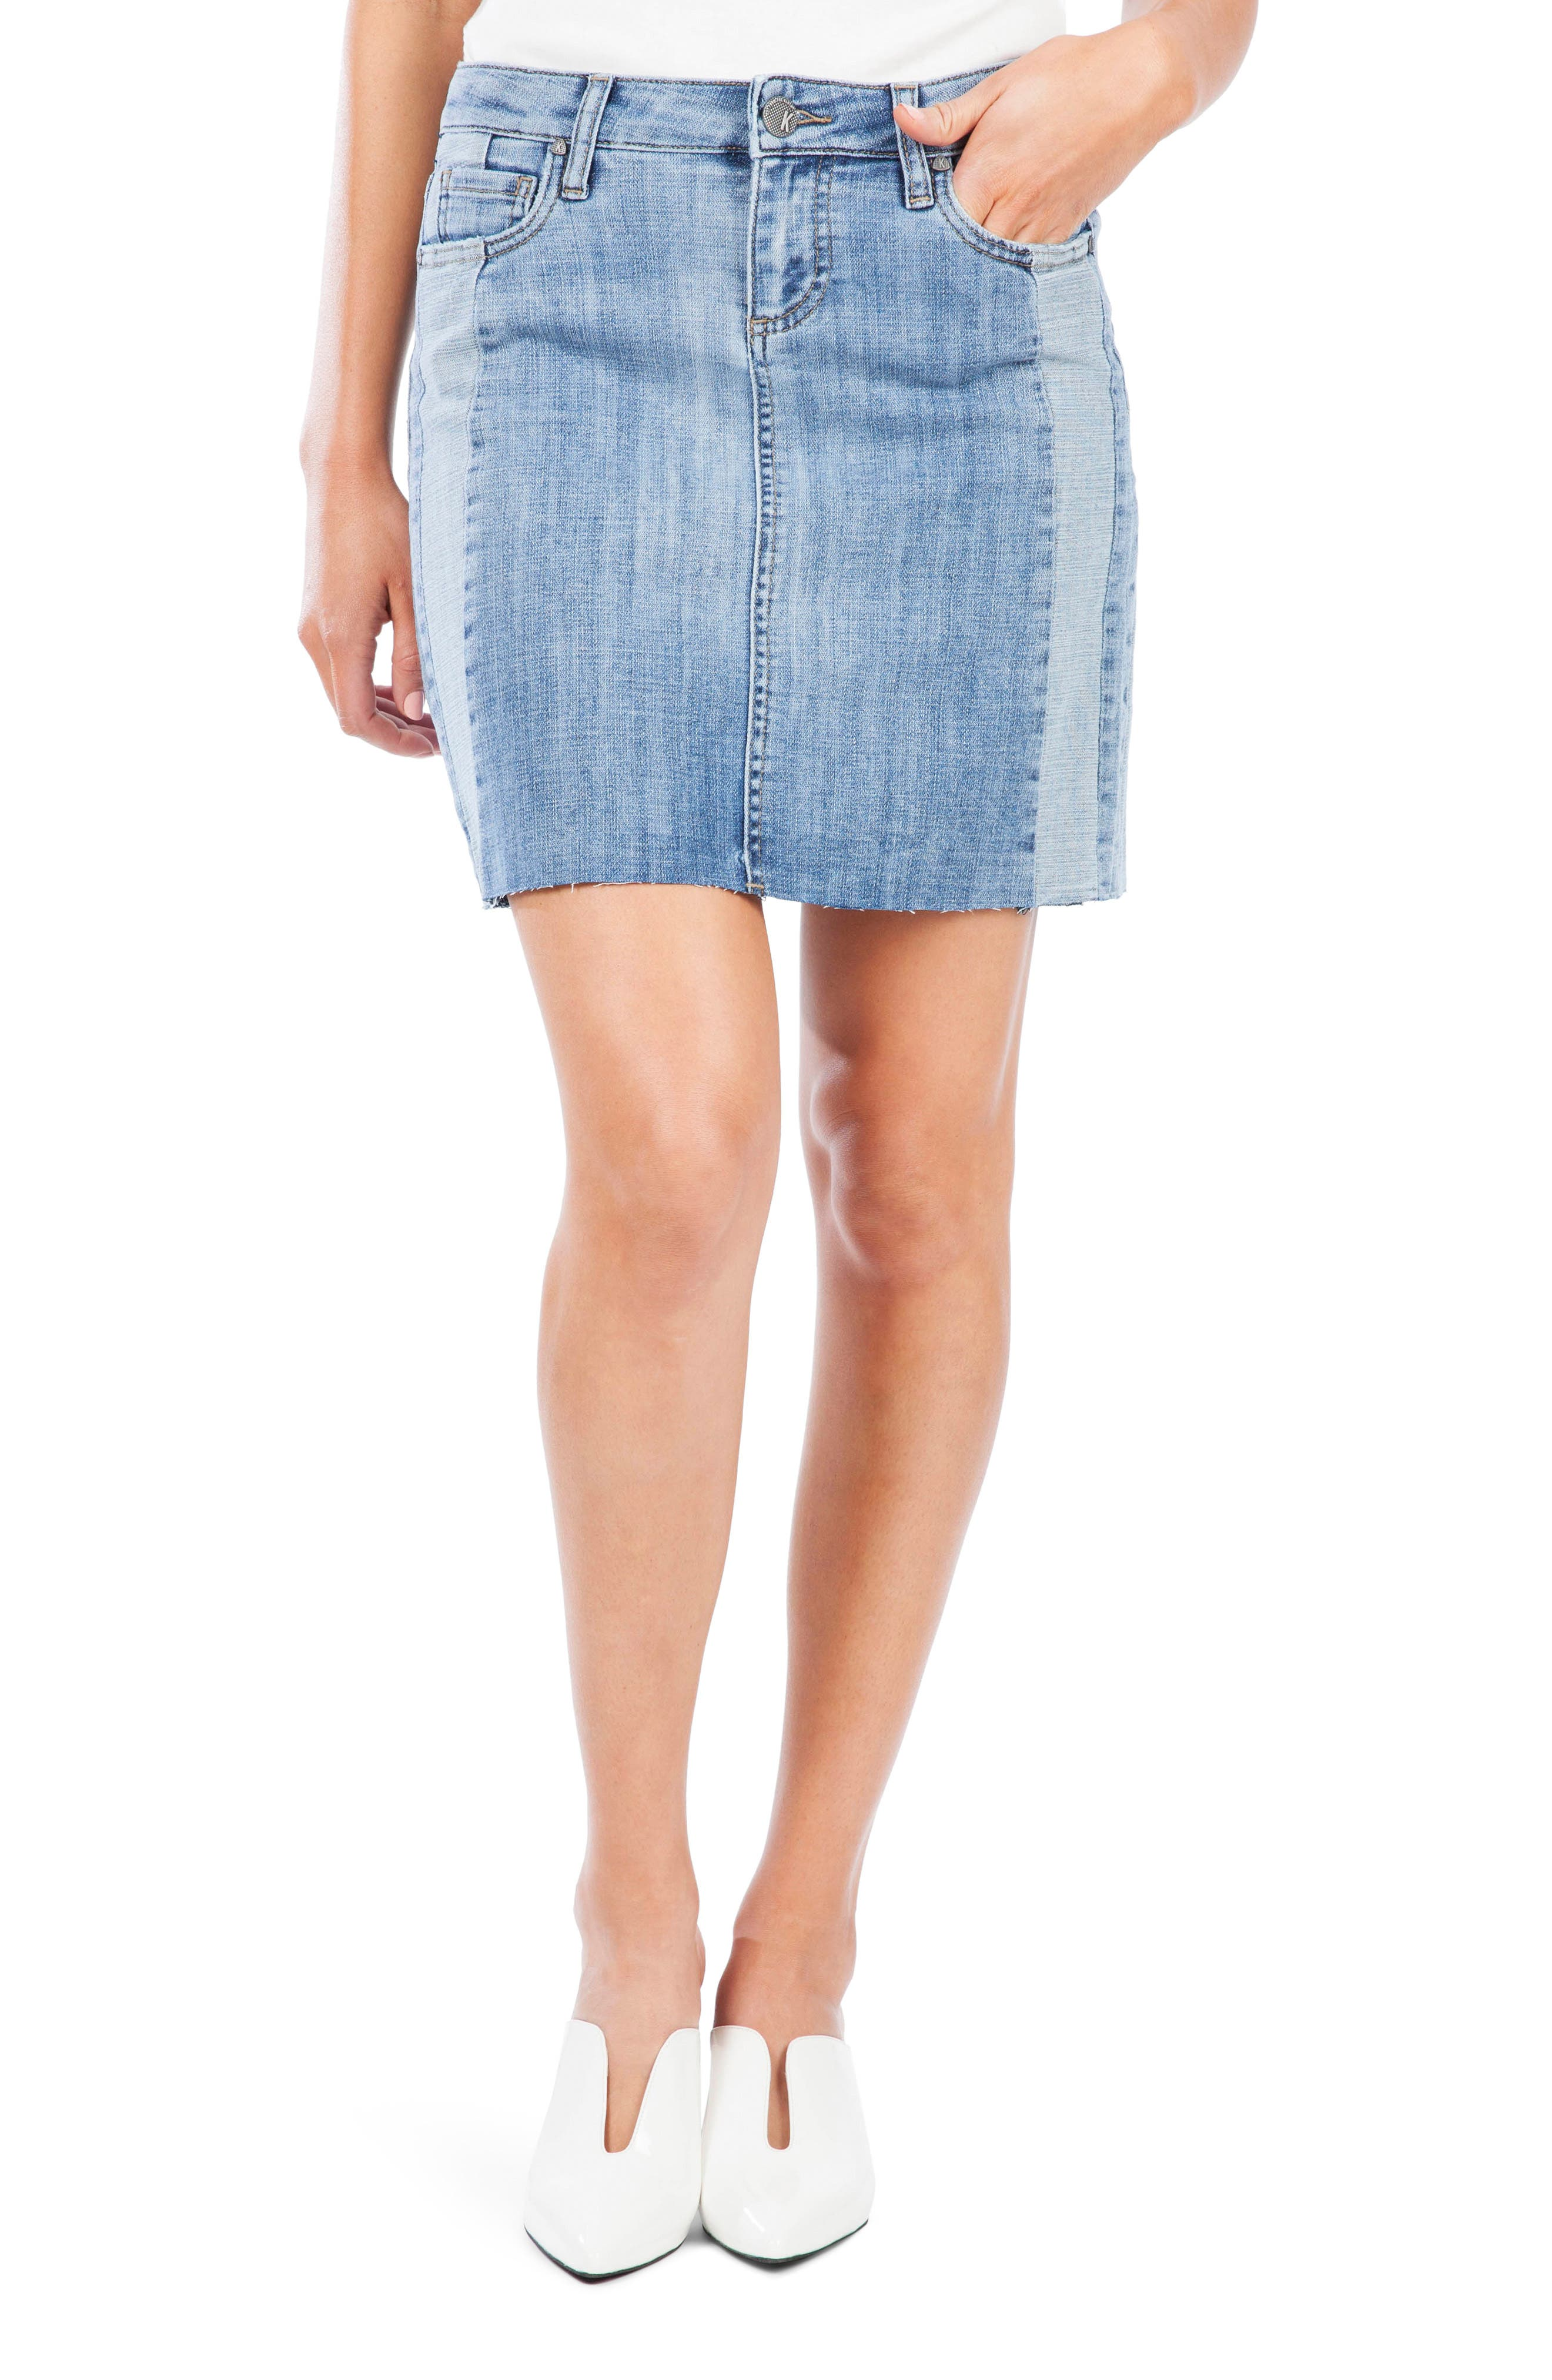 From finely faded to beautifully bleached out, this raw-hem mini is ready to be your denim-day fave. Style Name: Kut From The Kloth Joey Contrast Detail Raw Hem Denim Miniskirt. Style Number: 5869792. Available in stores.